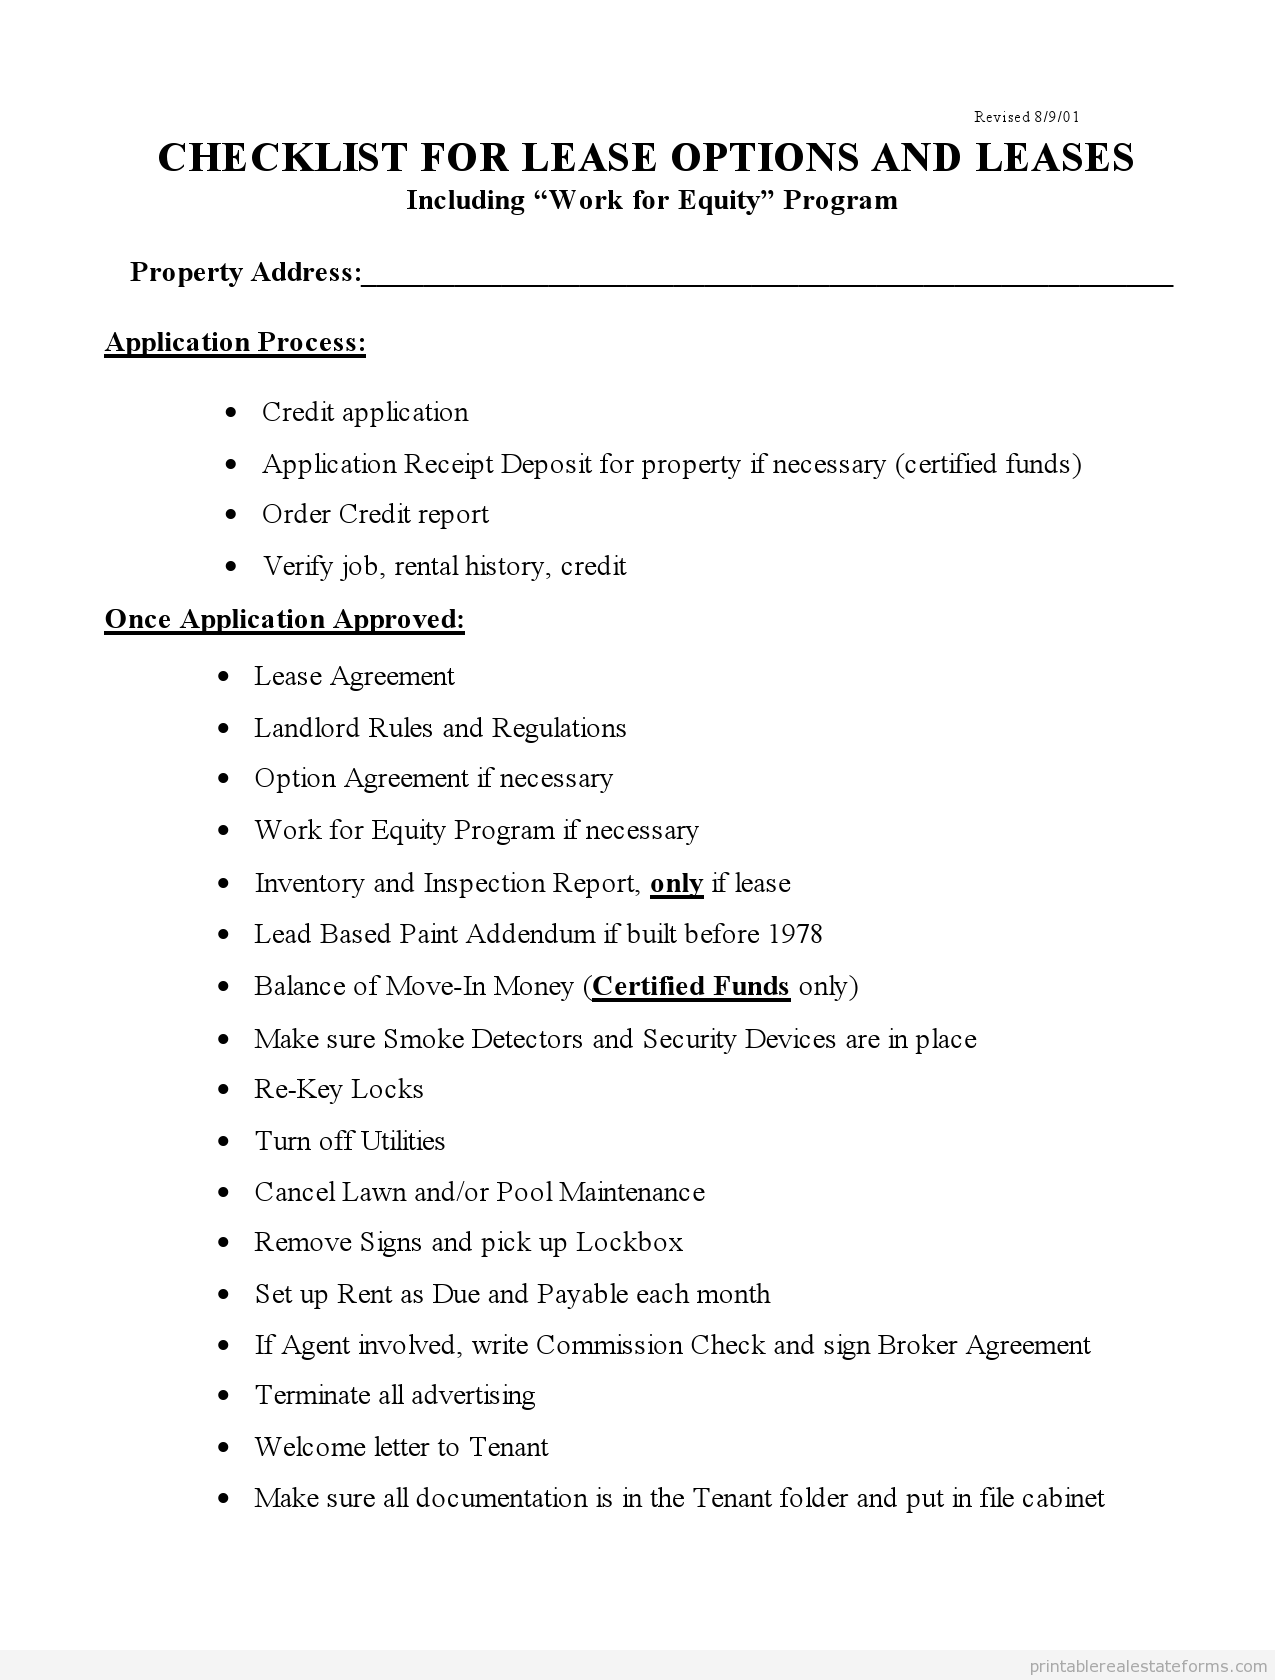 Sample Printable Checklist For Lease Options And Leases 2